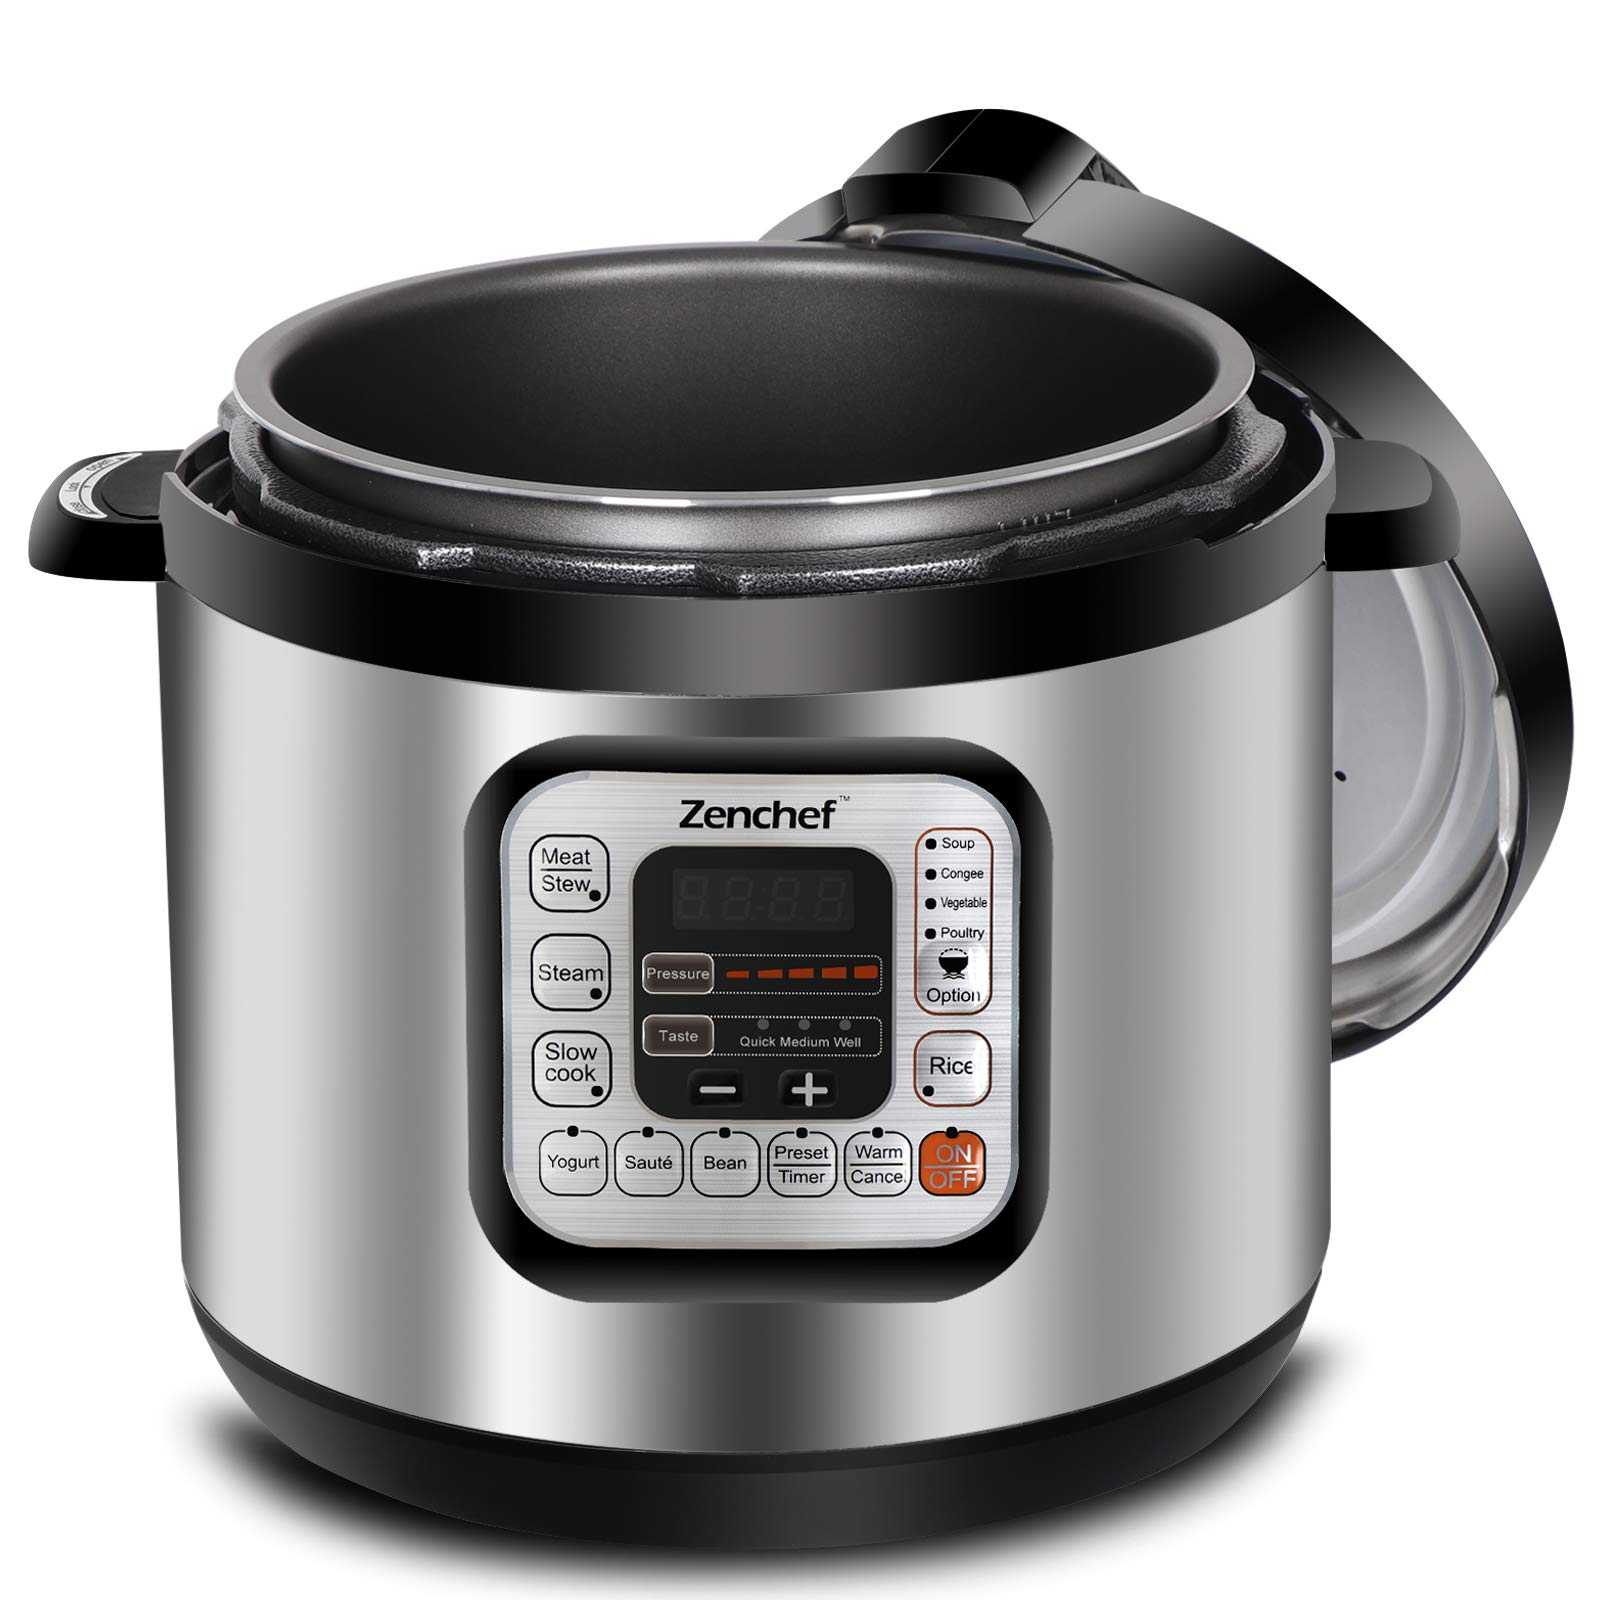 Zenchef Newest Generation 11-in-1 Electric Pressure Cooker 6 Qt XL Family Size Slow Cooker, Rice Cooker, Yogurt Maker, Sauté, Steamer, Warmer, Stew and Sterilizer, 1000W